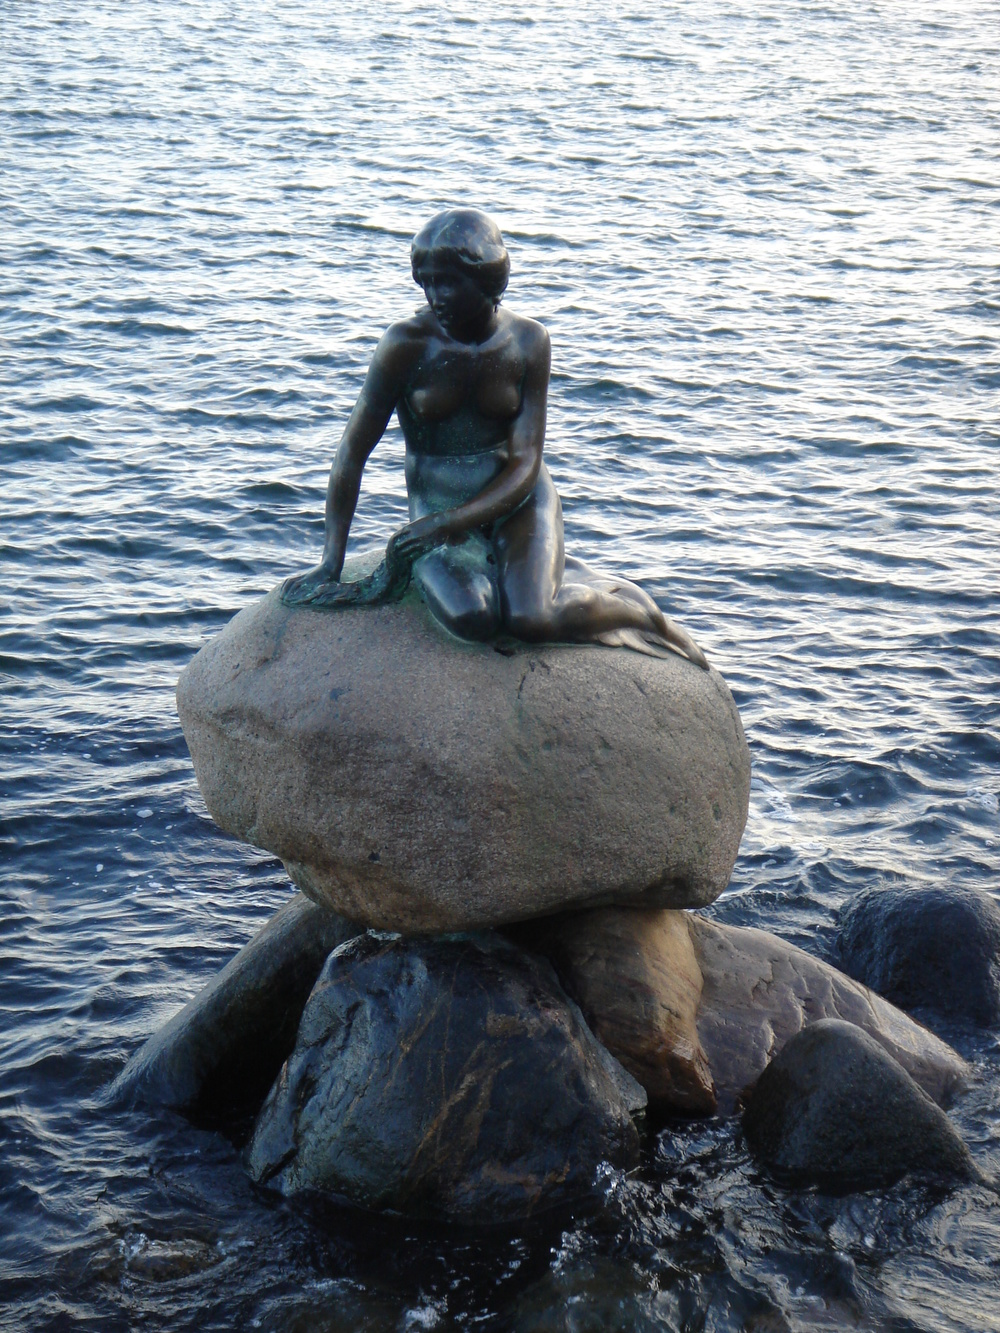 The Little Mermaid - perhaps THE most famous landmark in Copenhagen!